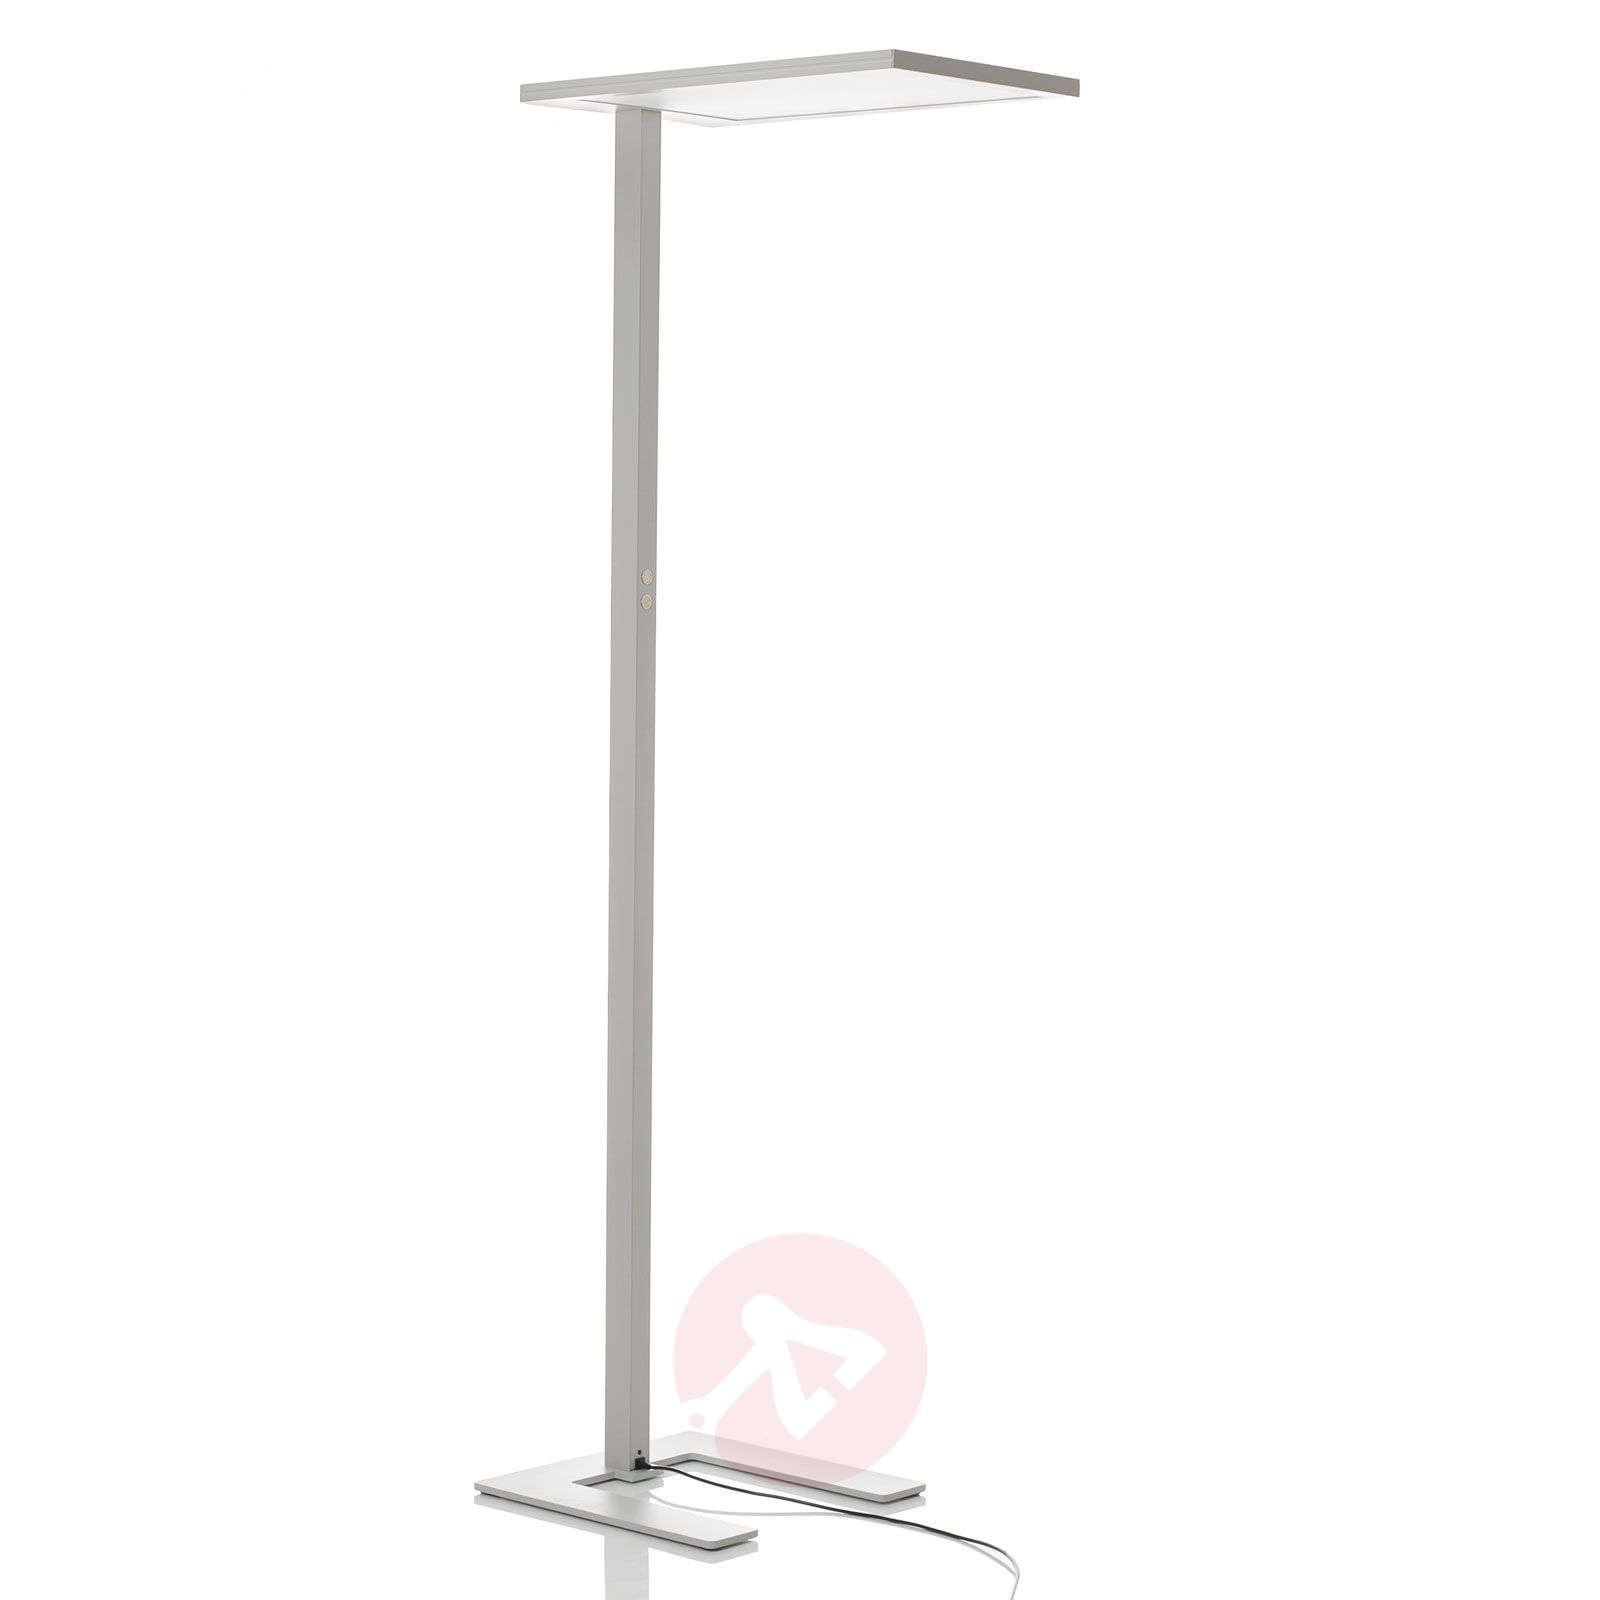 Javier LED office floor lamp, direct-indirect-3056018-01